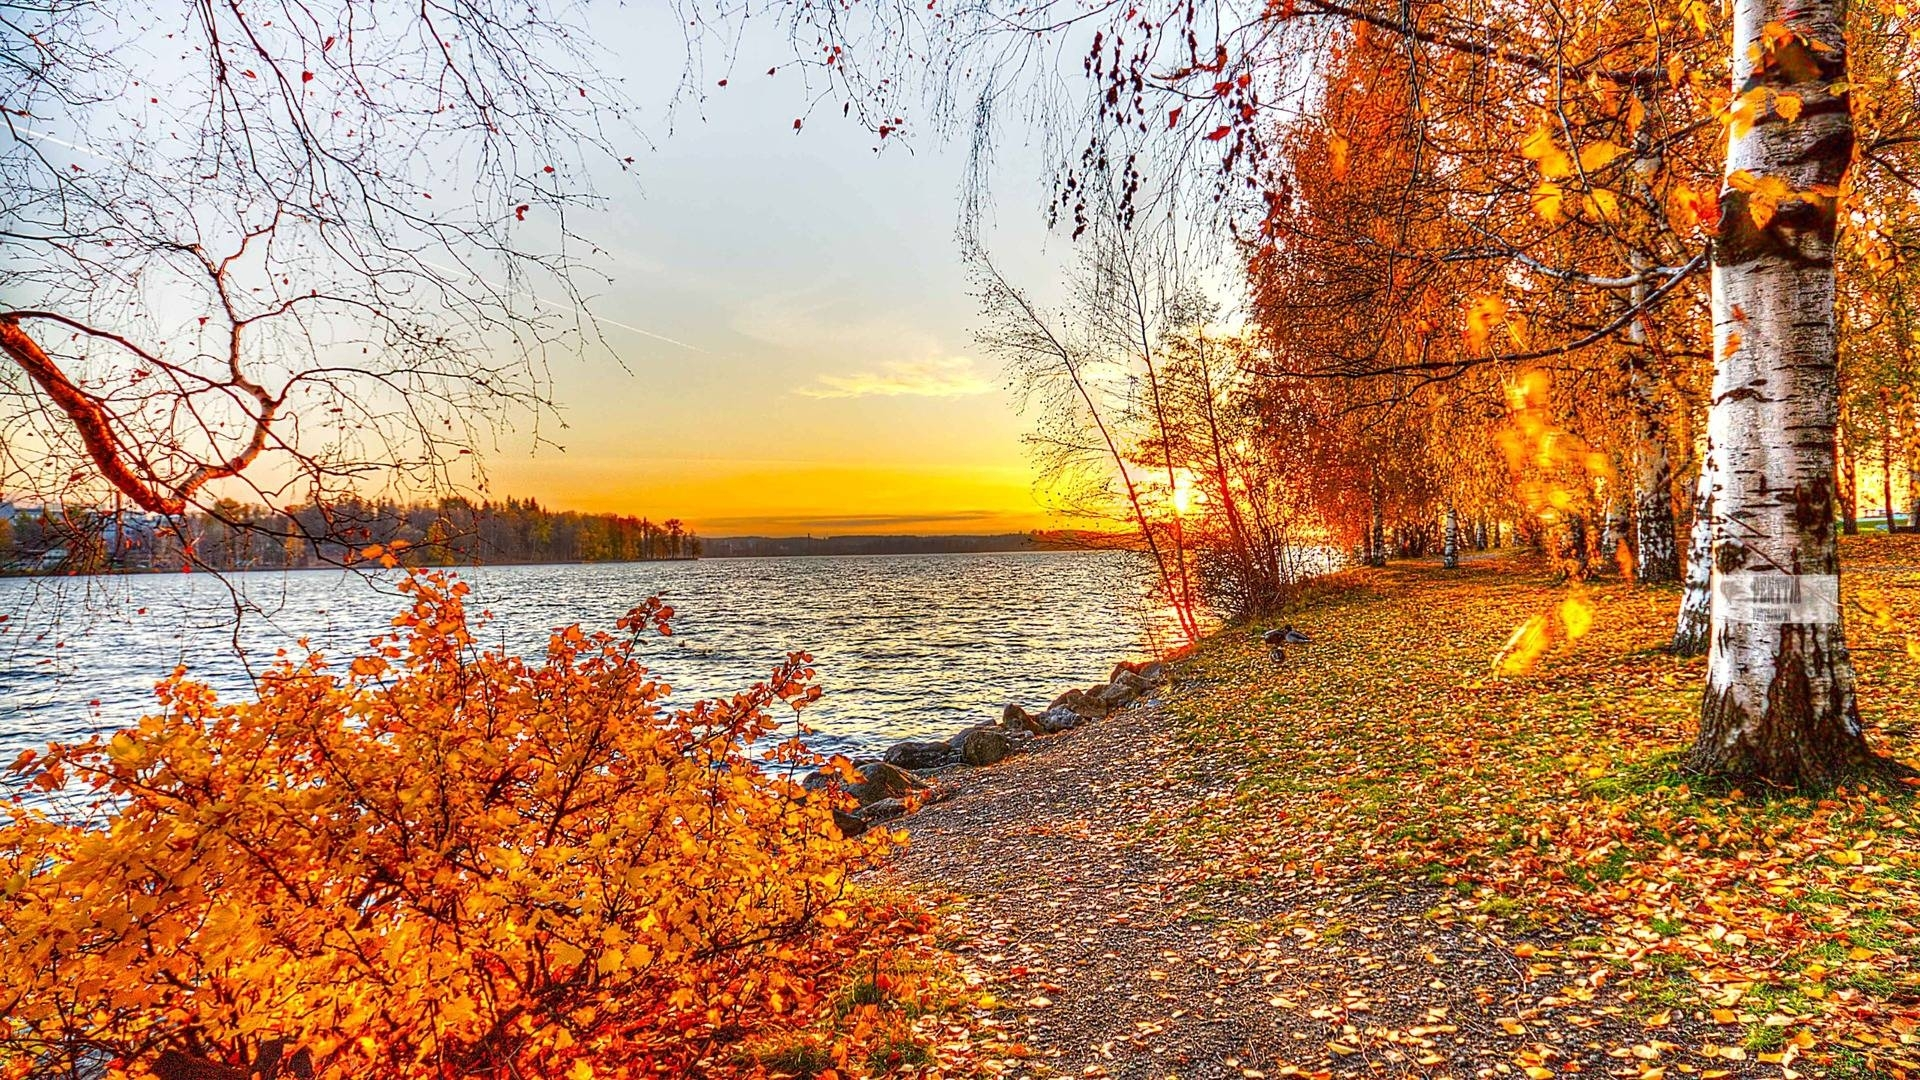 fall desktop photos hd wallpapers. - media file | pixelstalk